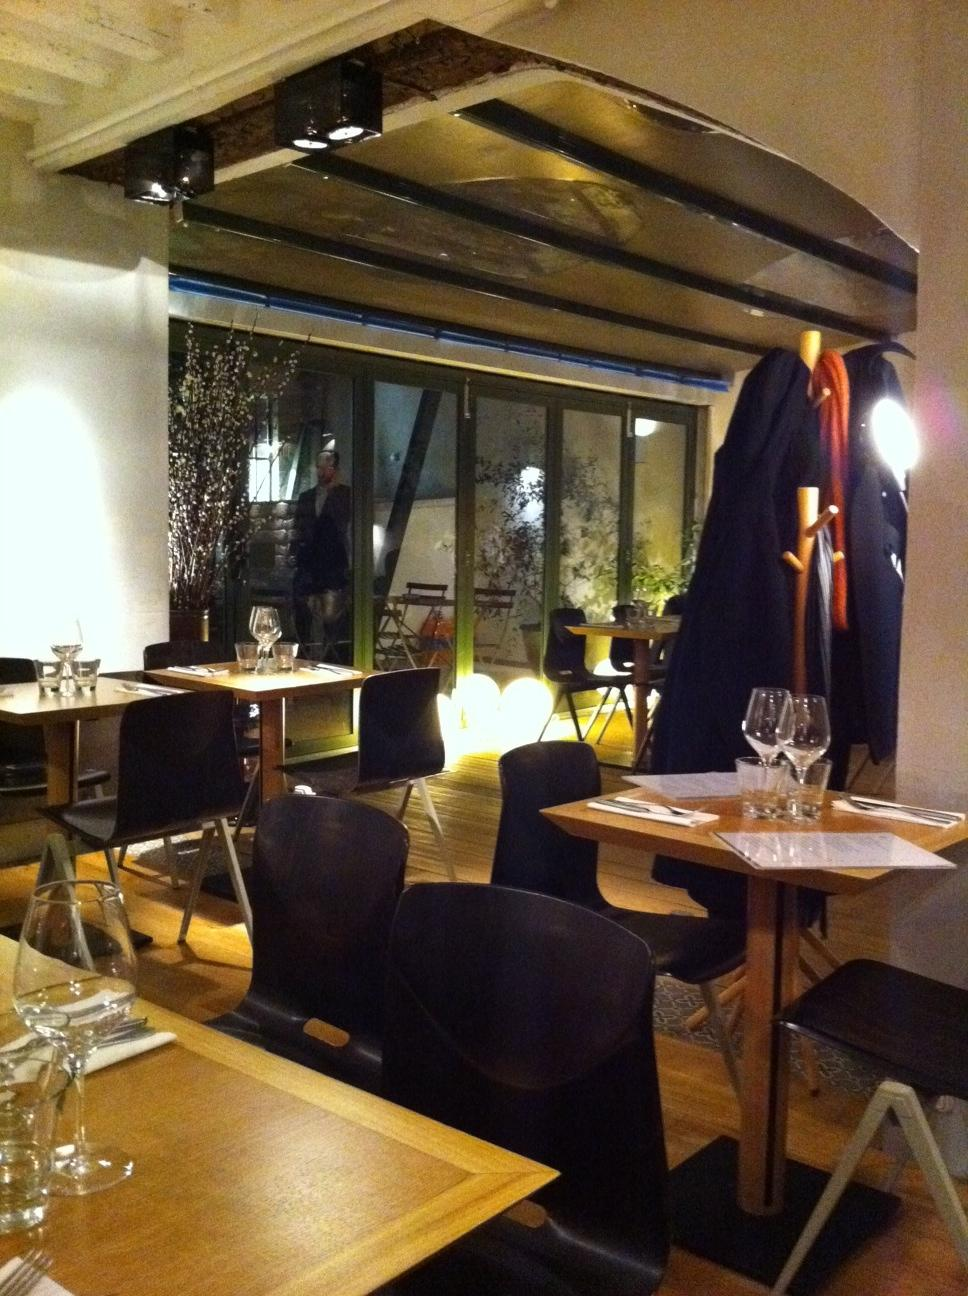 jaja restaurant paris 4e bistrot jaja selon didier paris 4e restaurants. Black Bedroom Furniture Sets. Home Design Ideas